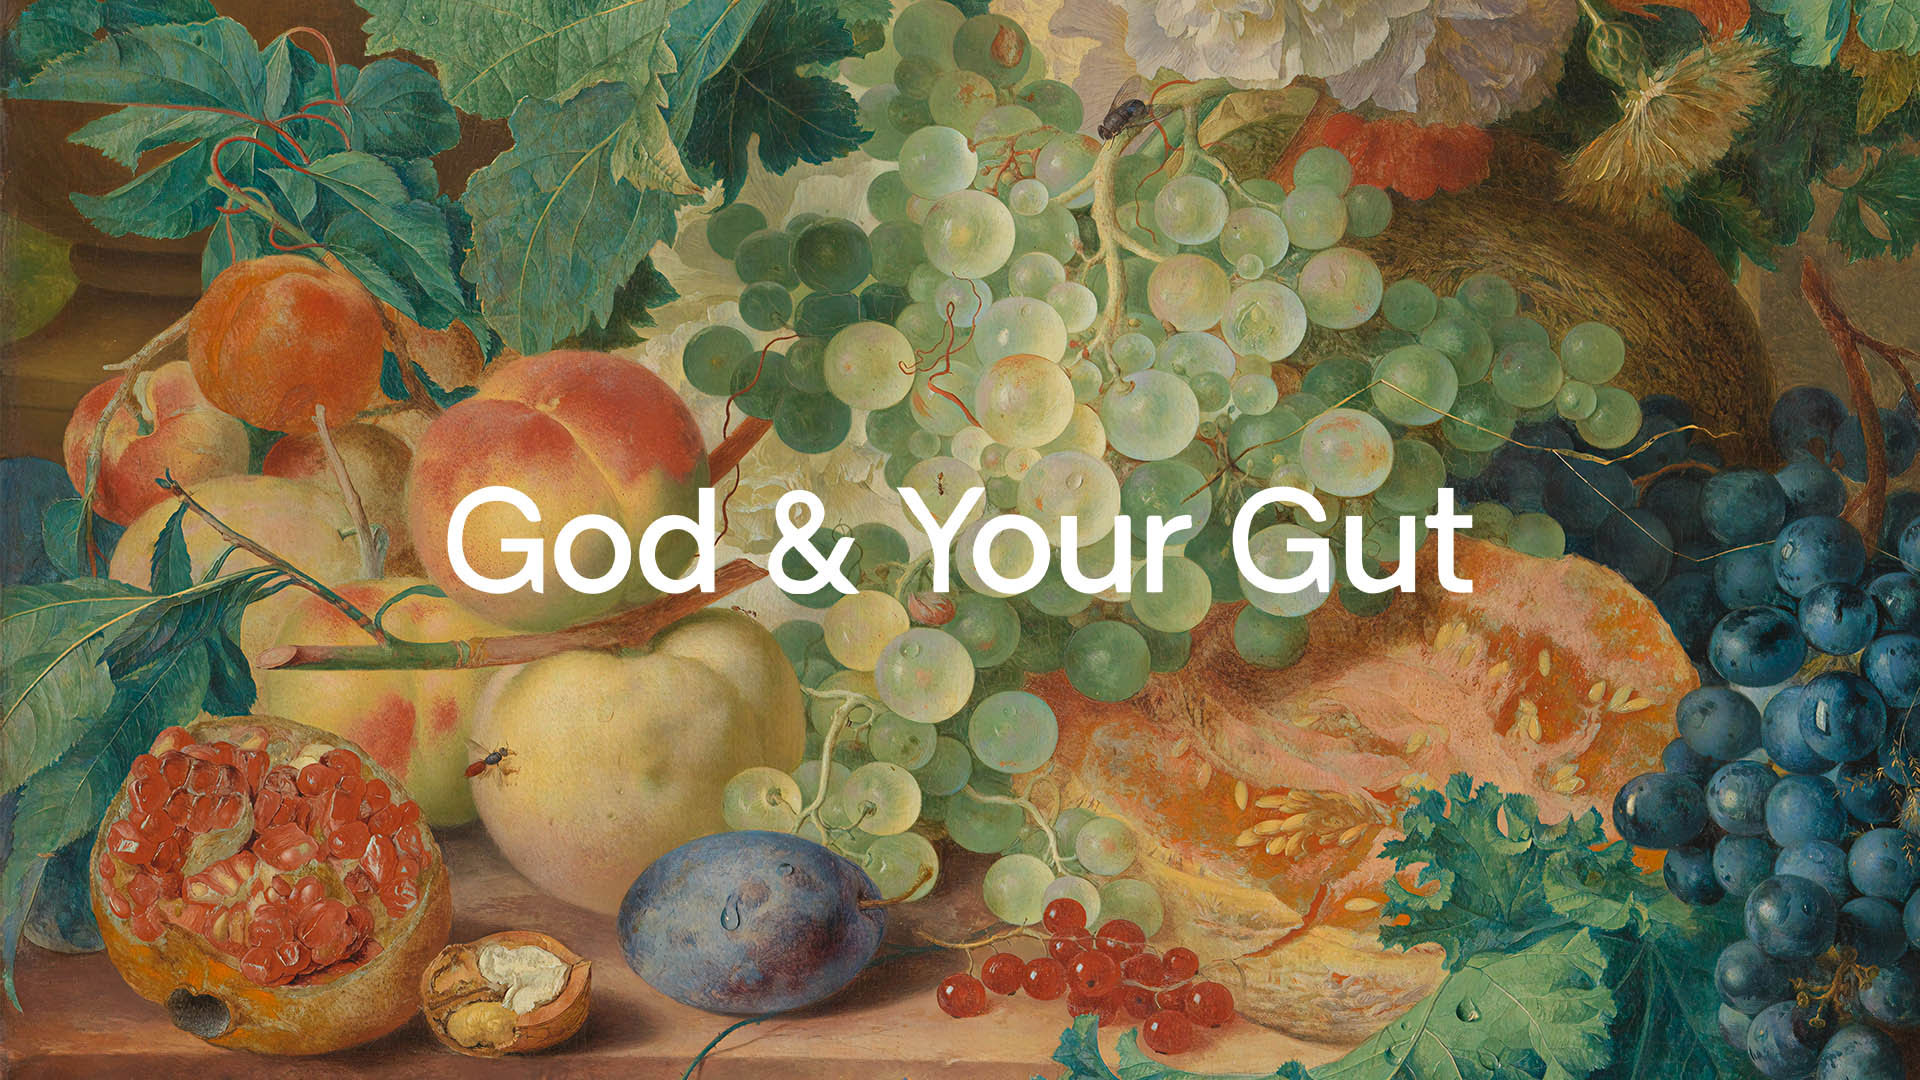 Series: God & Your Gut